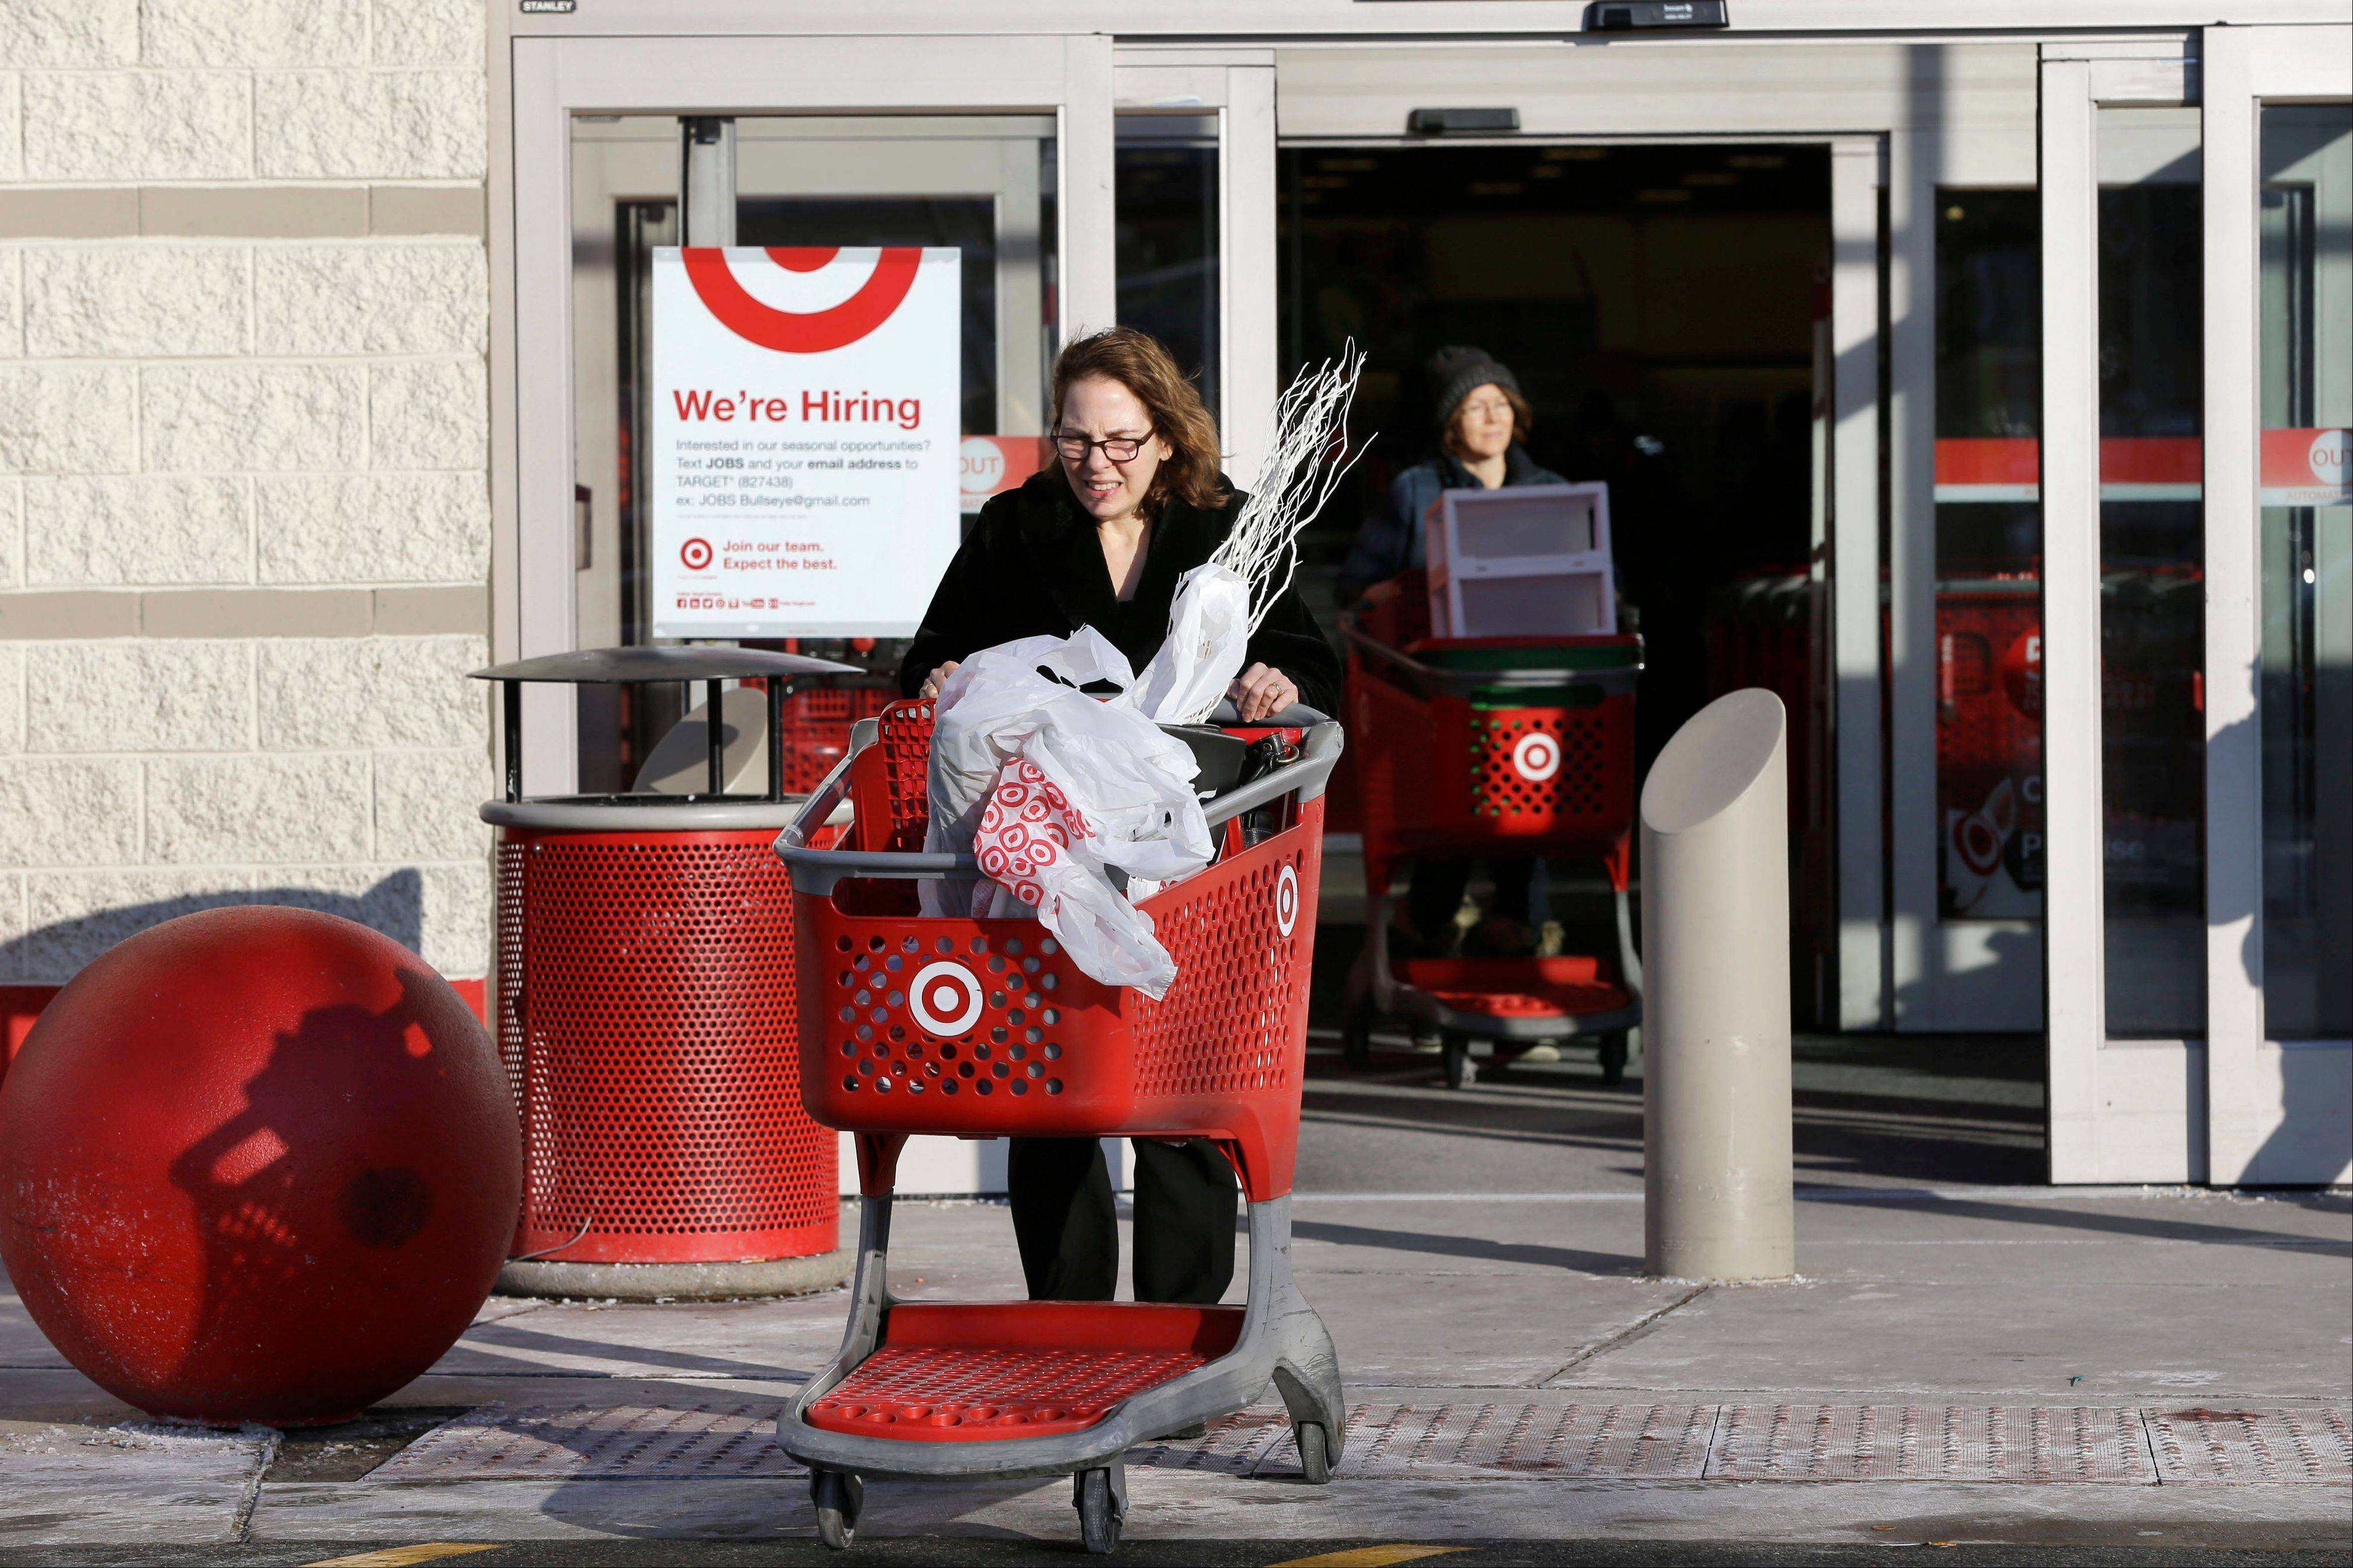 With less than a week until Christmas, a real-life Grinch has stolen the credit and debit card information of about 40 million Target shoppers.